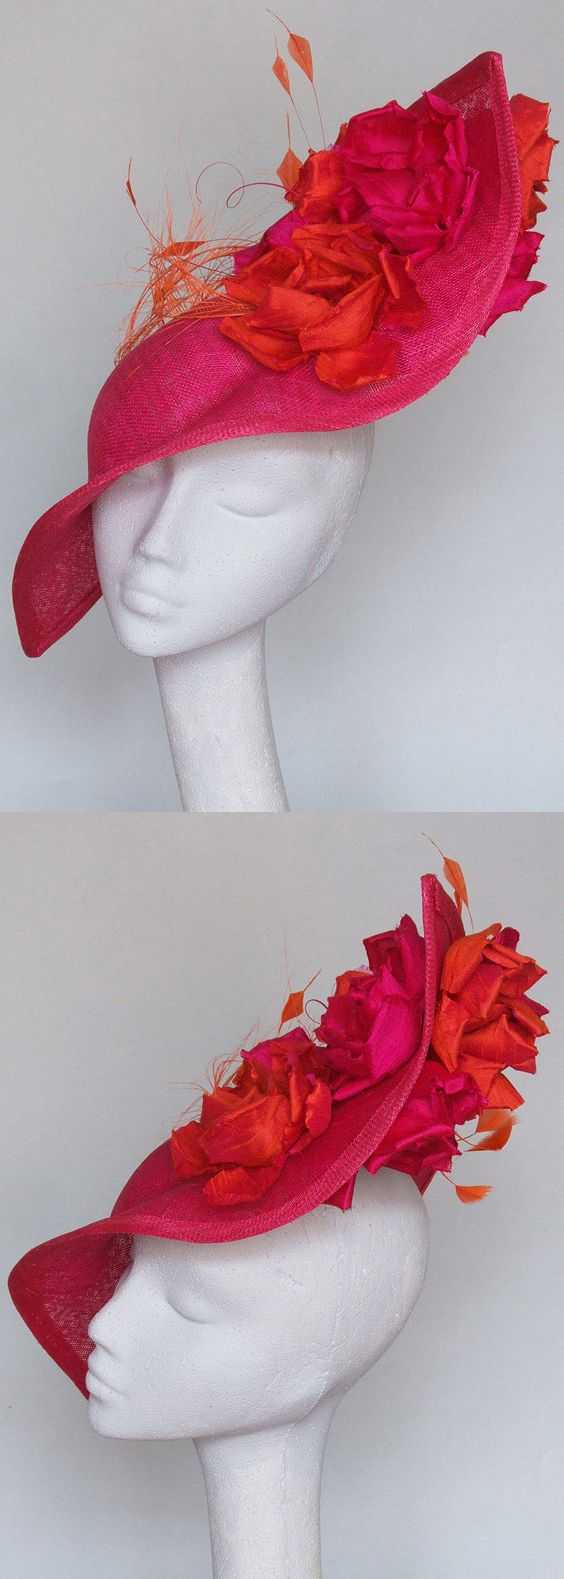 Hot Pink and Orange Floral Hatinator Fascinator with silk petals, for Kentucky Derby, Del Mar, Epsom, Royal Ascot. Gold Lace Veiled Floral Fascinator for Racing Day at the Races, Dubai World Cup racing fashion inspiration. Summer wedding guest outfits, or Mother of the bride. #kentuckyderby #royalascot #bridal #fascinators #springwedding #weddingguest  #derbyoutfits #racingfashion #ascothats #derbyhats #handmadeonetsy #affiliatelink #handmadeisbest #weddingoutfits #motherofthebride…